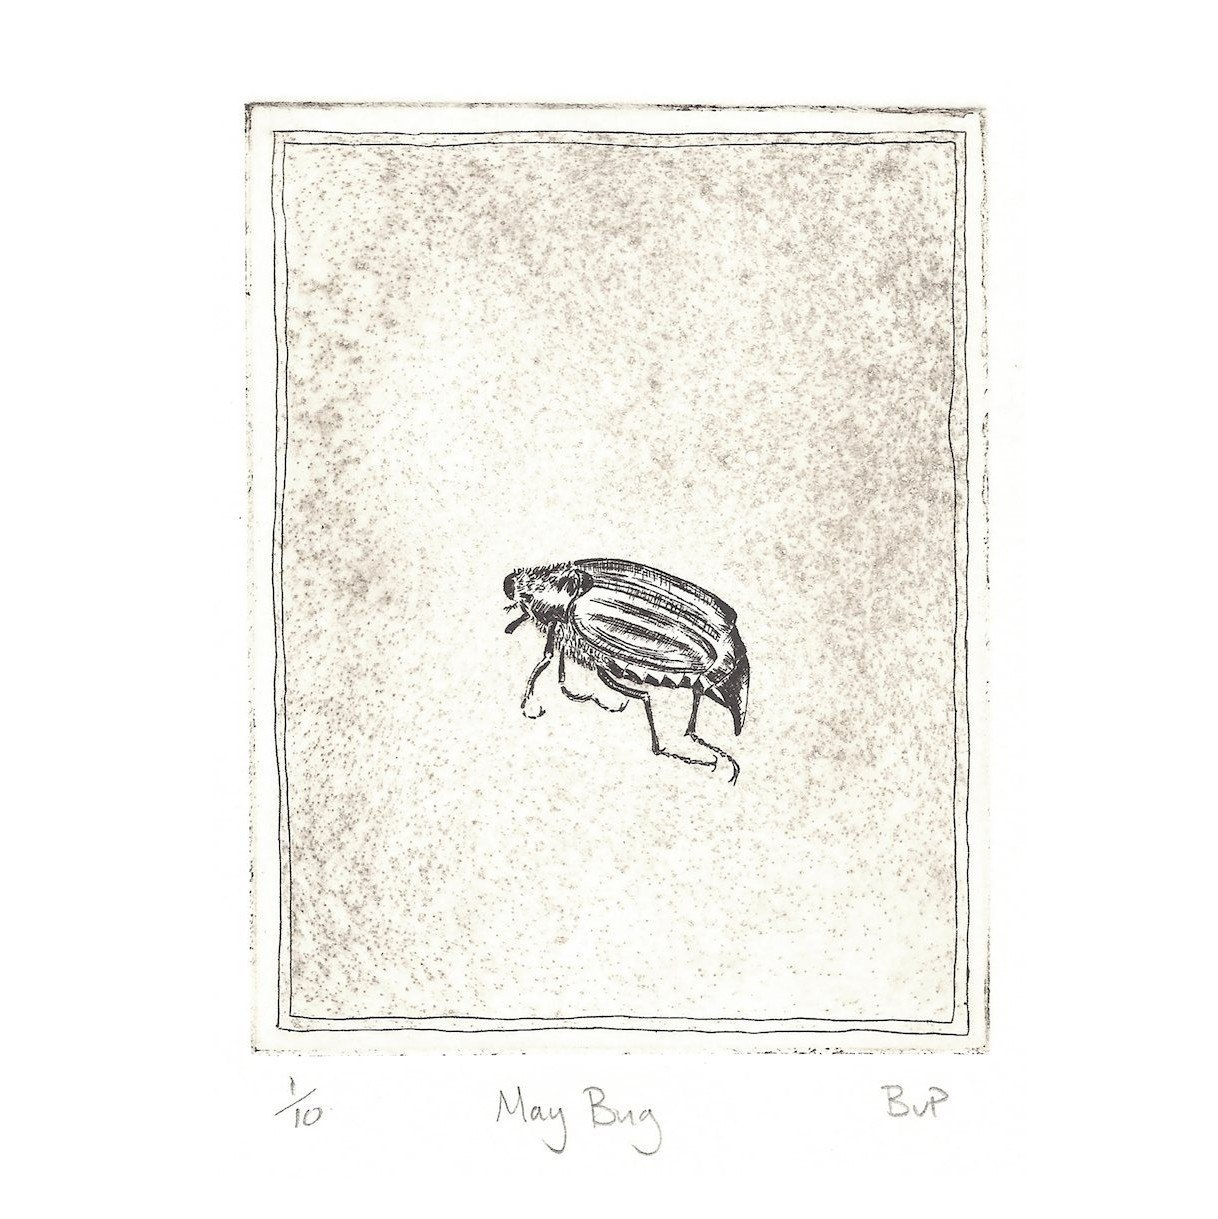 zb May bug aquatint.jpg